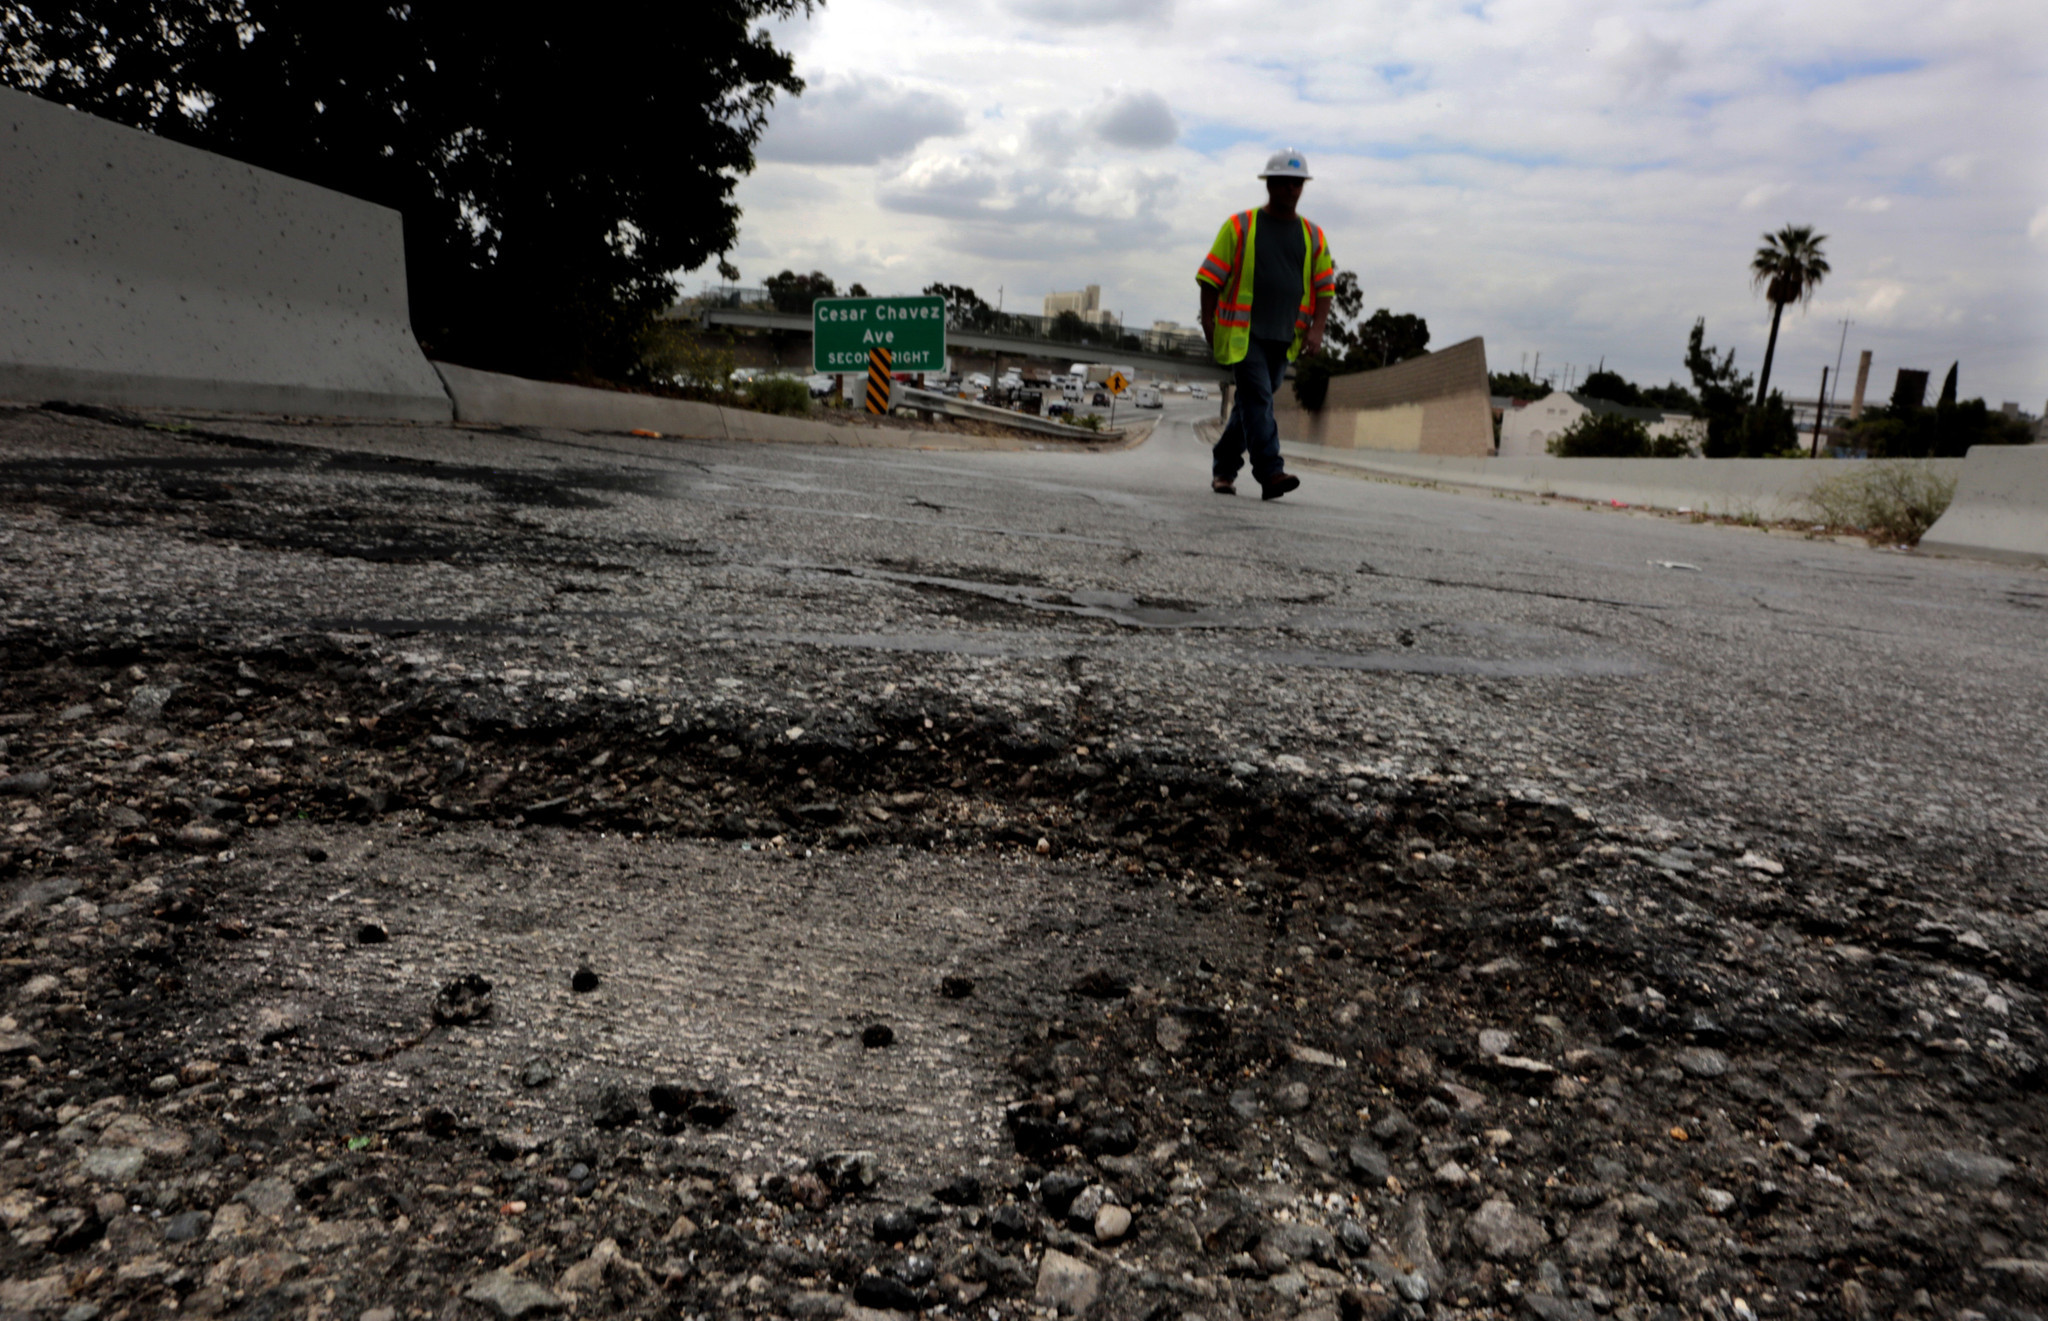 A Caltrans maintenance supervisor walks along a portion of a southbound 5 Freeway onramp where potholes and cracks are common in 2015. (Los Angeles Times)